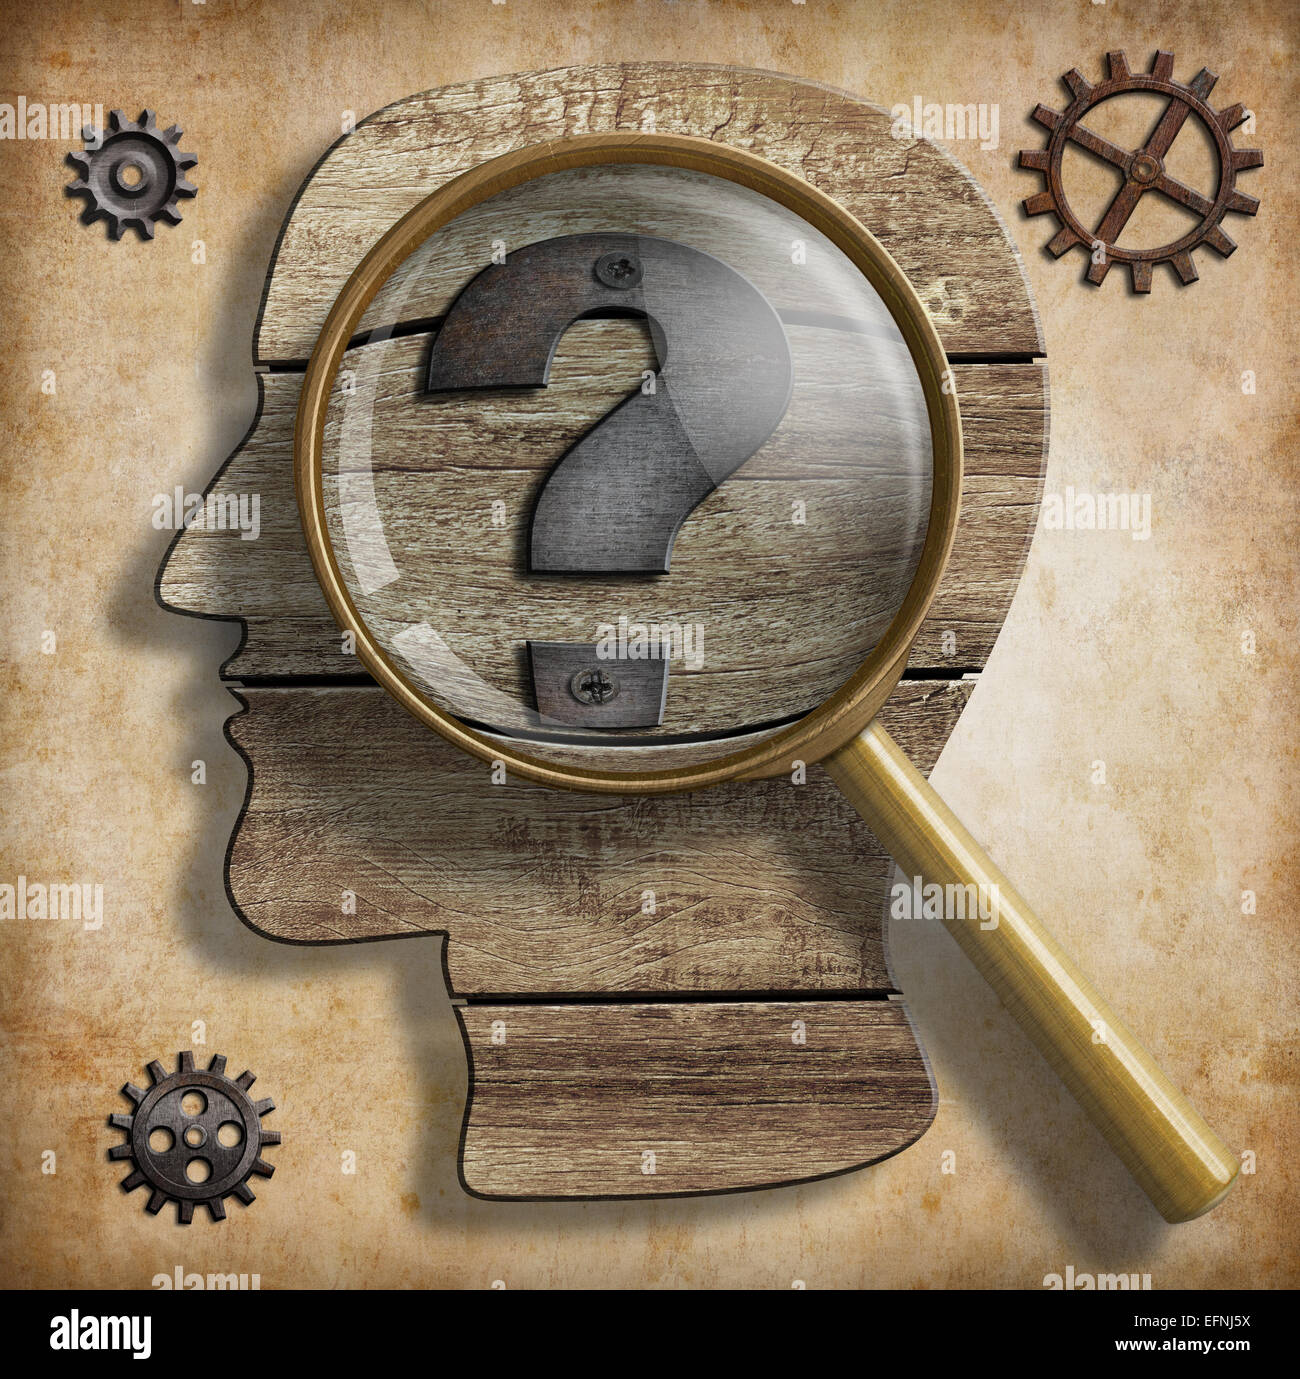 Idea or invention and creativity concept. - Stock Image